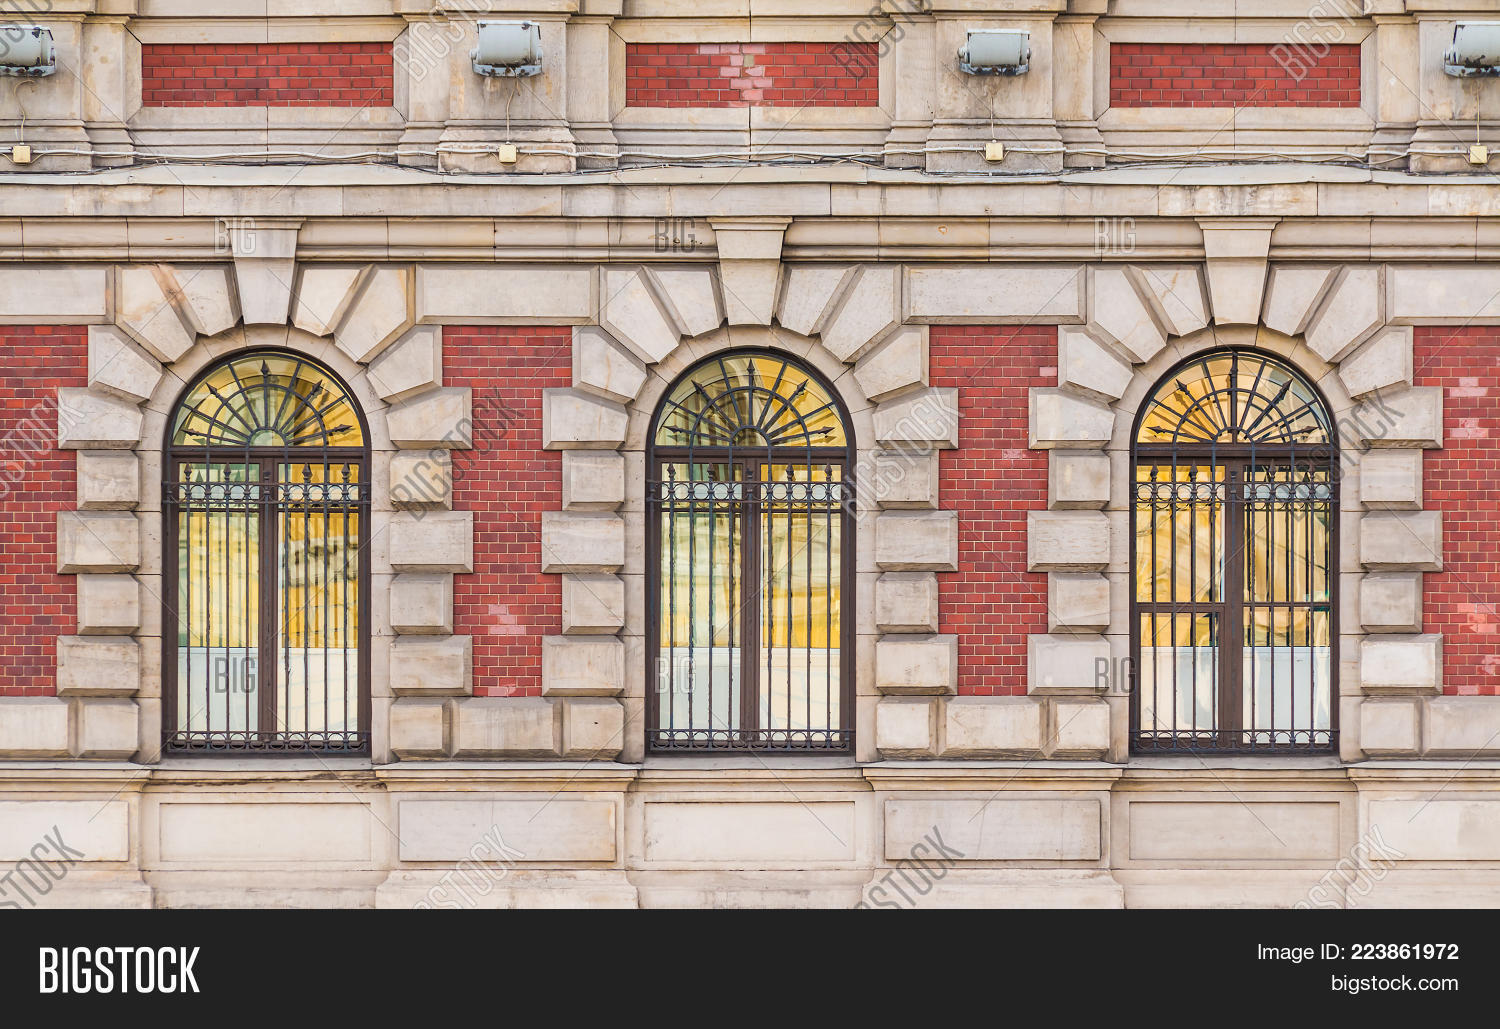 Three Windows In A Row On The Facade Of Urban Historic Building Front View